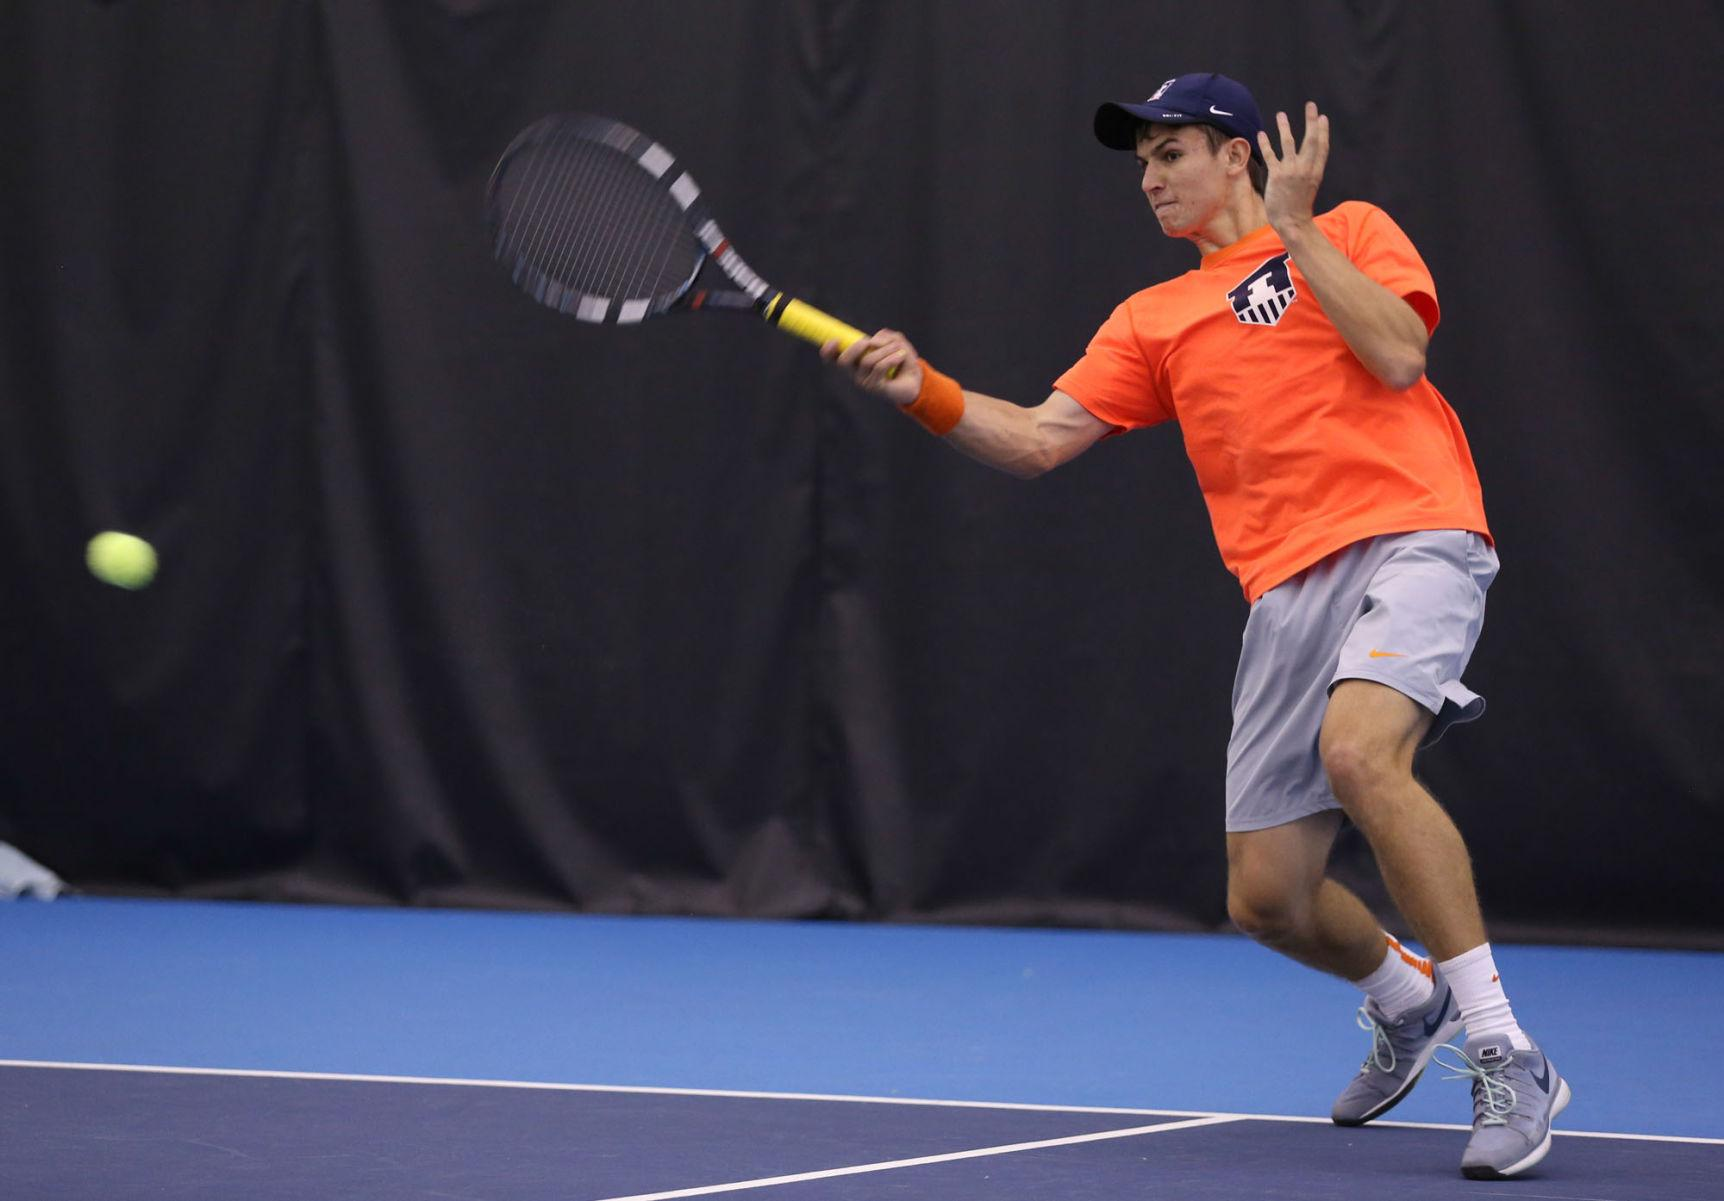 Illinois' Aleks Vukic attempts to return the ball during the match against Ohio State at Atkins Tennis Center, on Sunday, March 29.